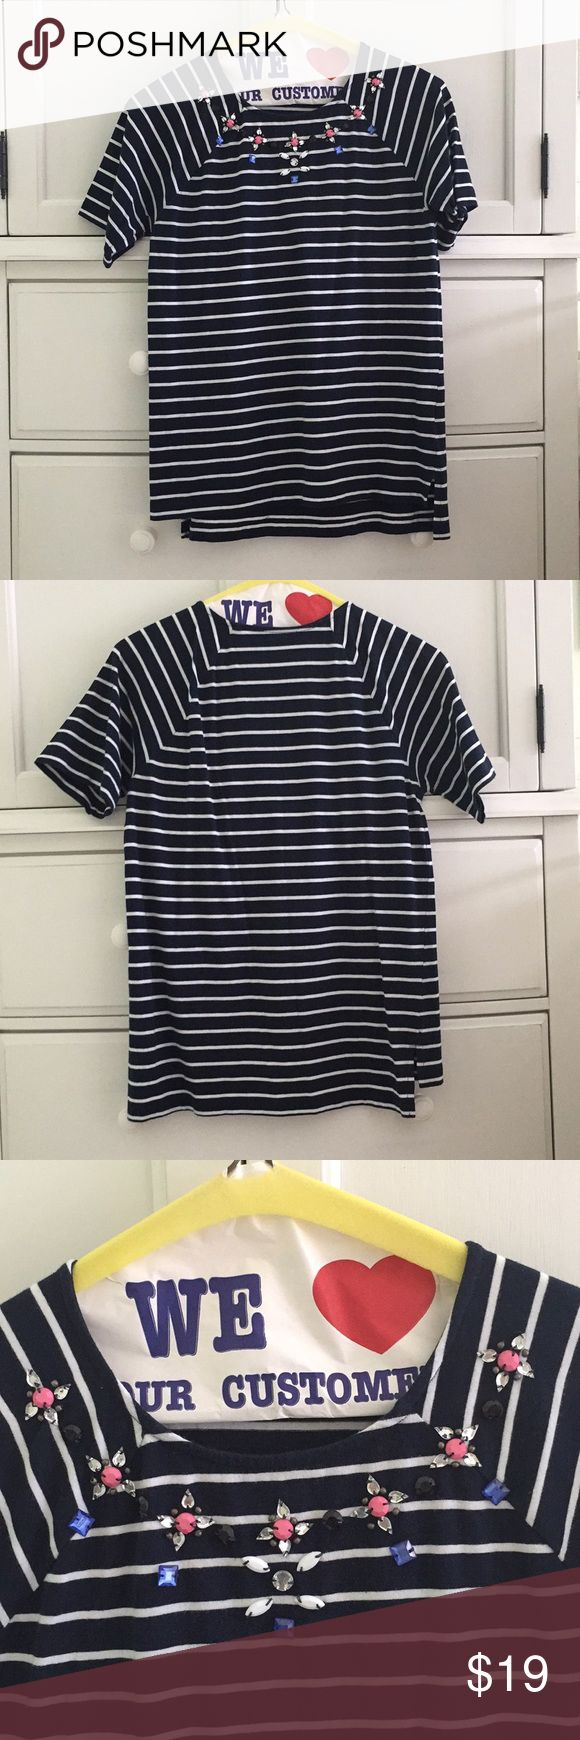 French Connection Jeweled Striped T-Shirt In excellent condition.  Soft, lightweight cotton T-Shirt with gemstones in a floral pattern on the neckline. Navy and white stripe pattern. Purchased at Bloomingdales. French Connection Tops Tees - Short Sleeve